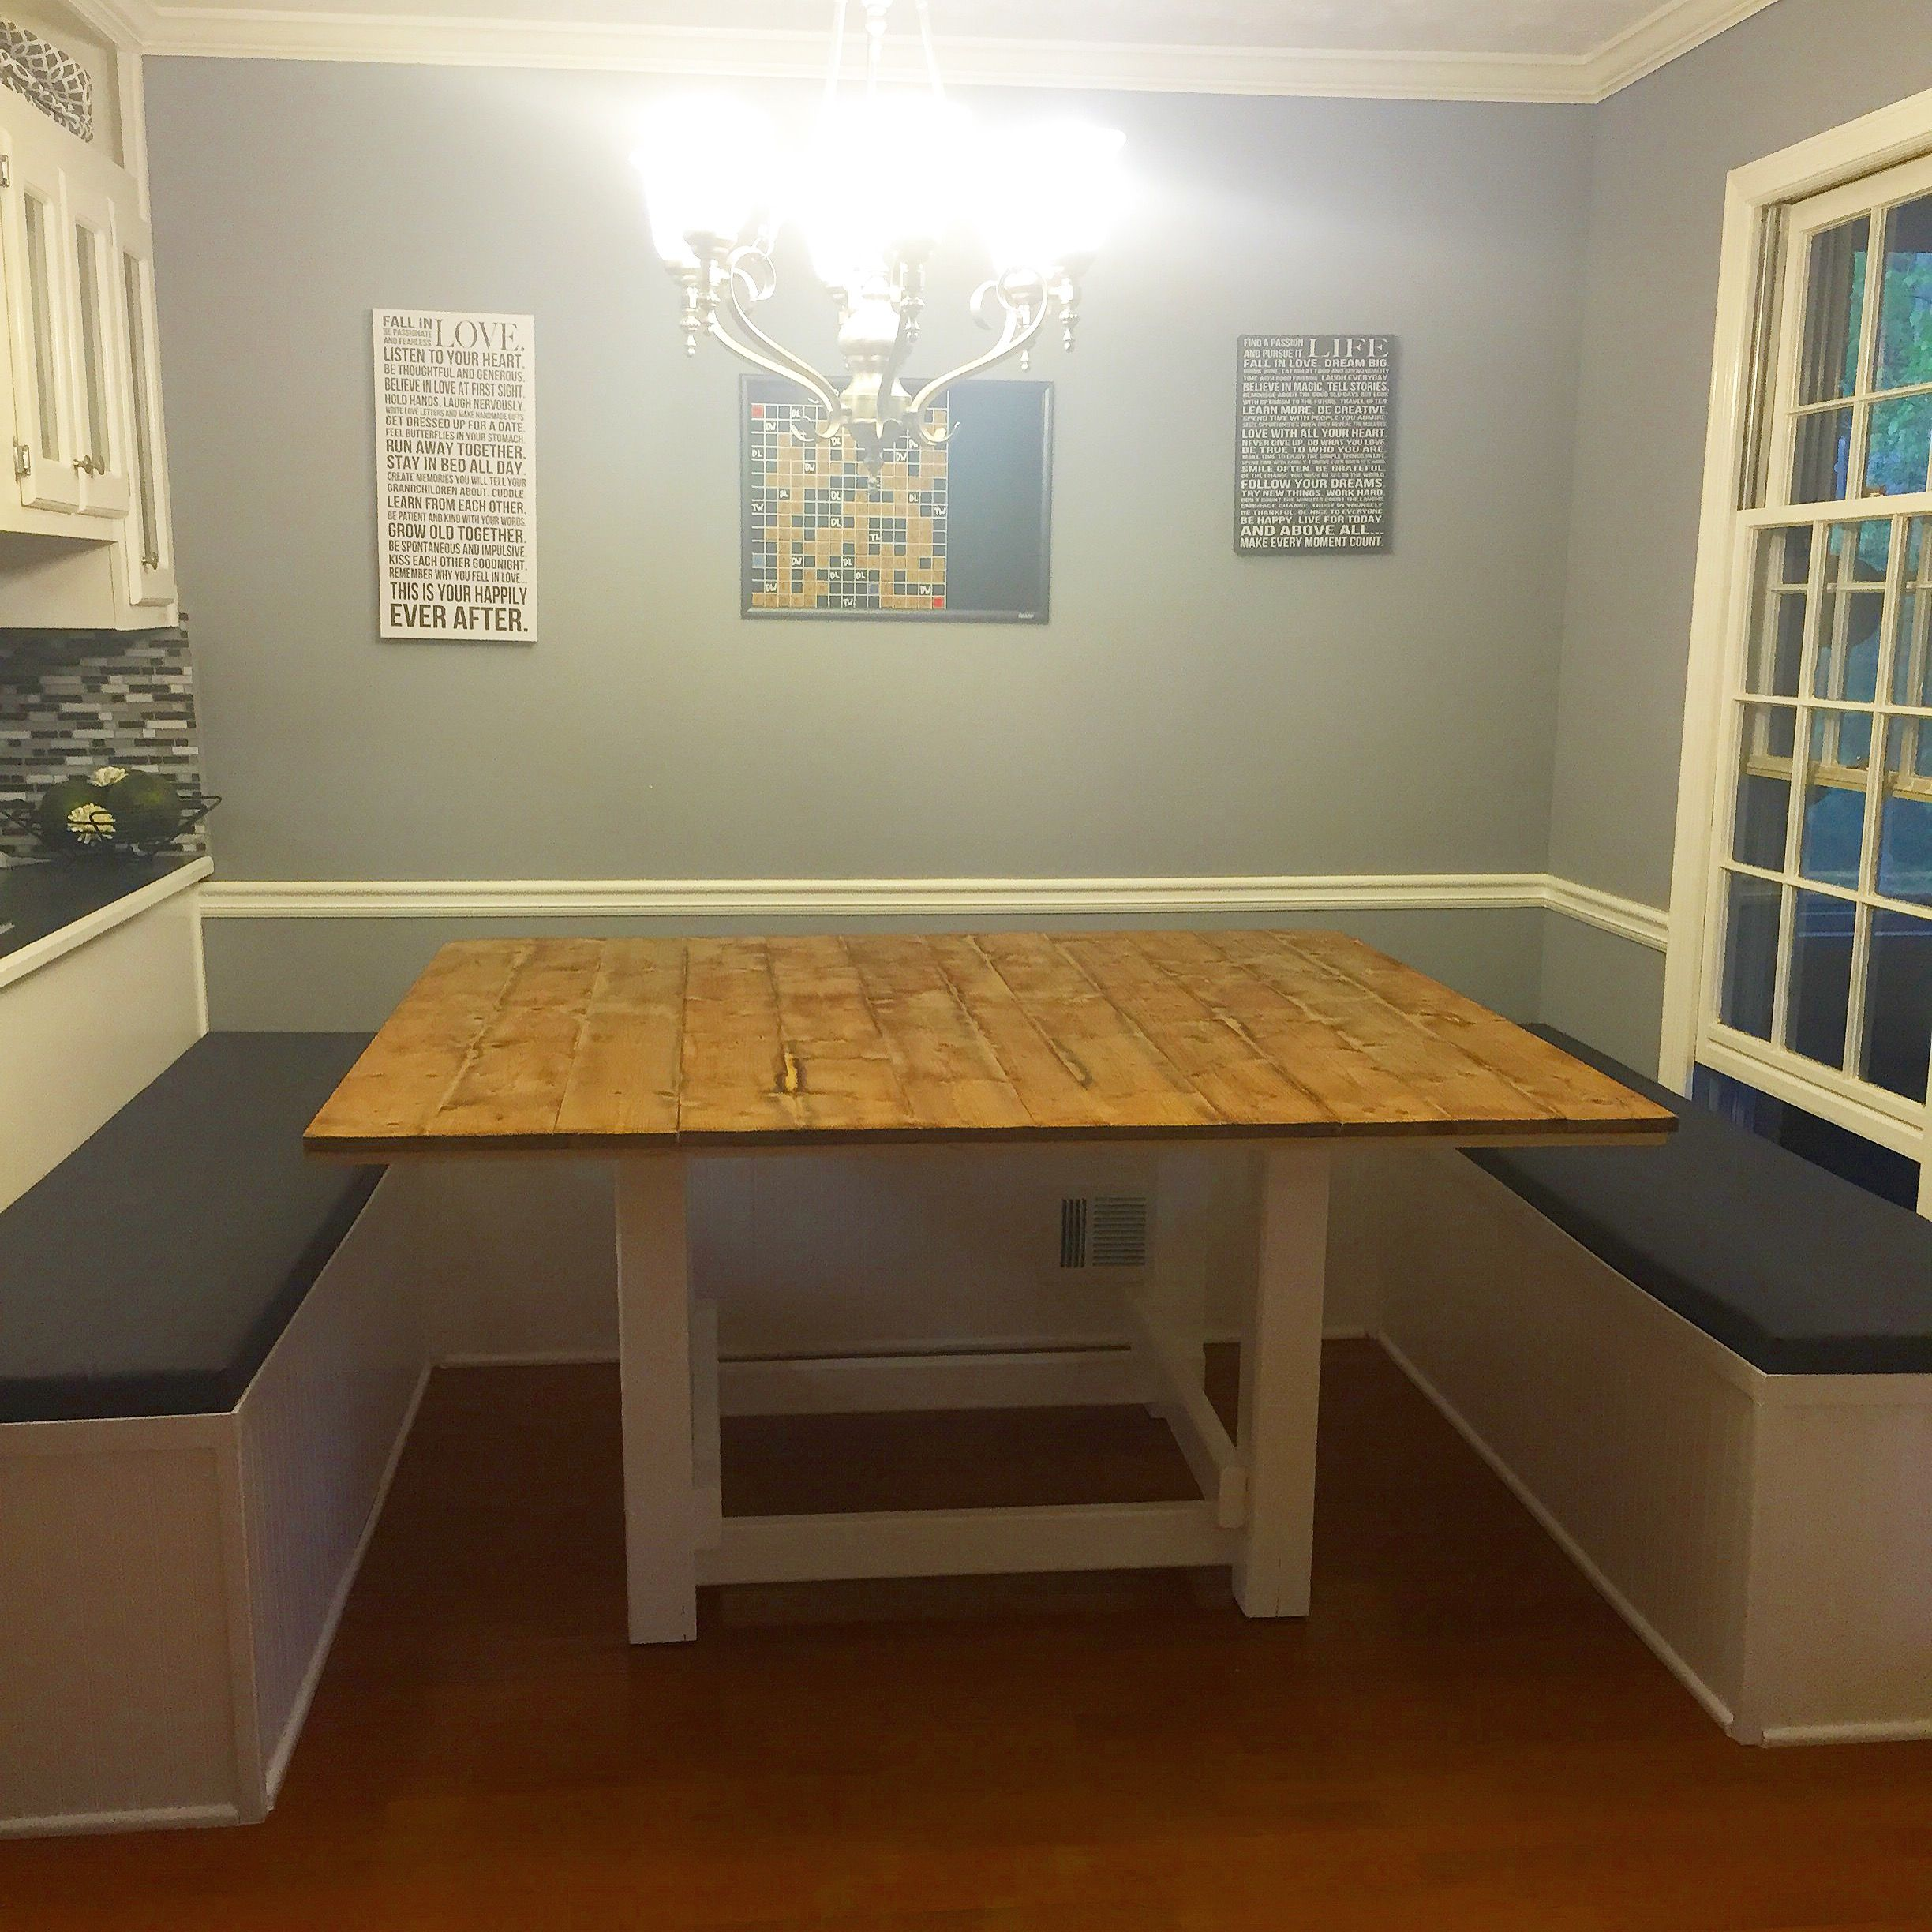 He Added A Table That Fit Perfectly In The Space